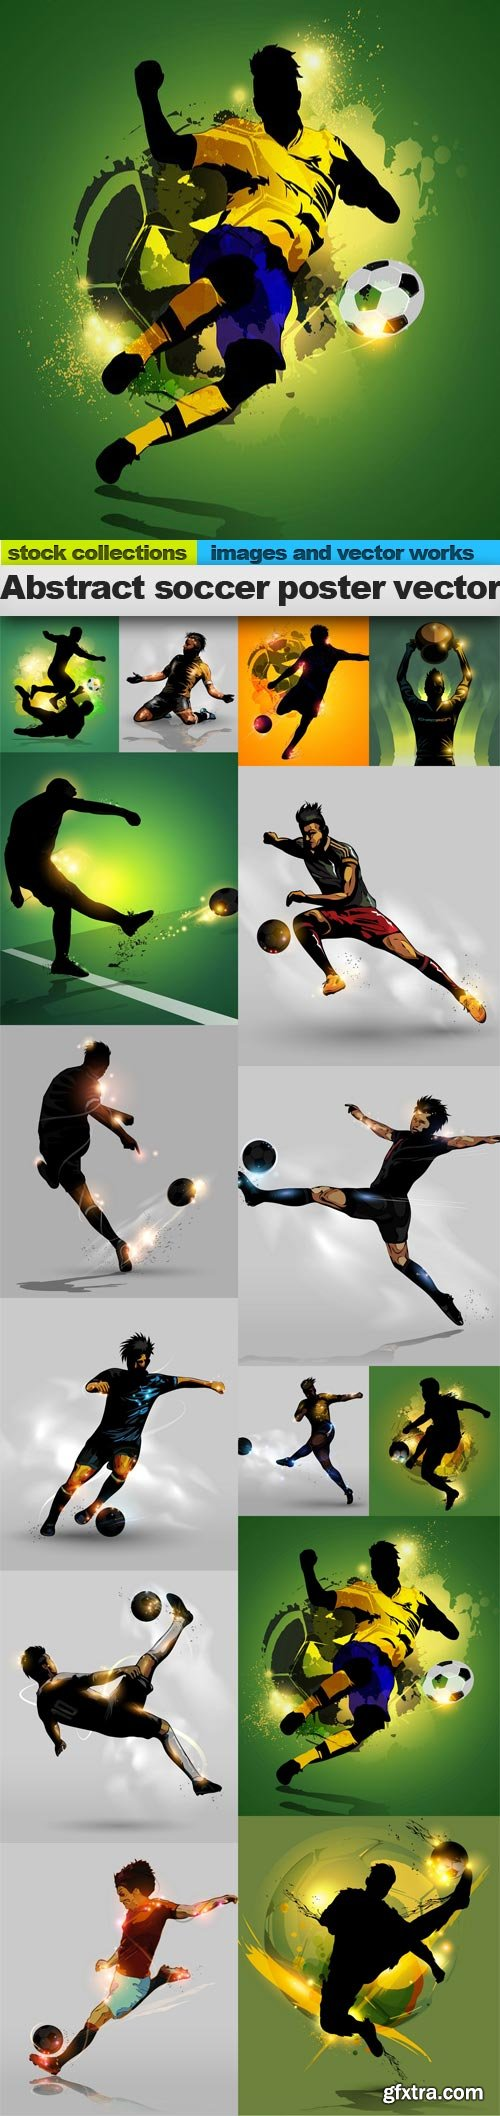 Abstract soccer poster vector, 15 x EPS